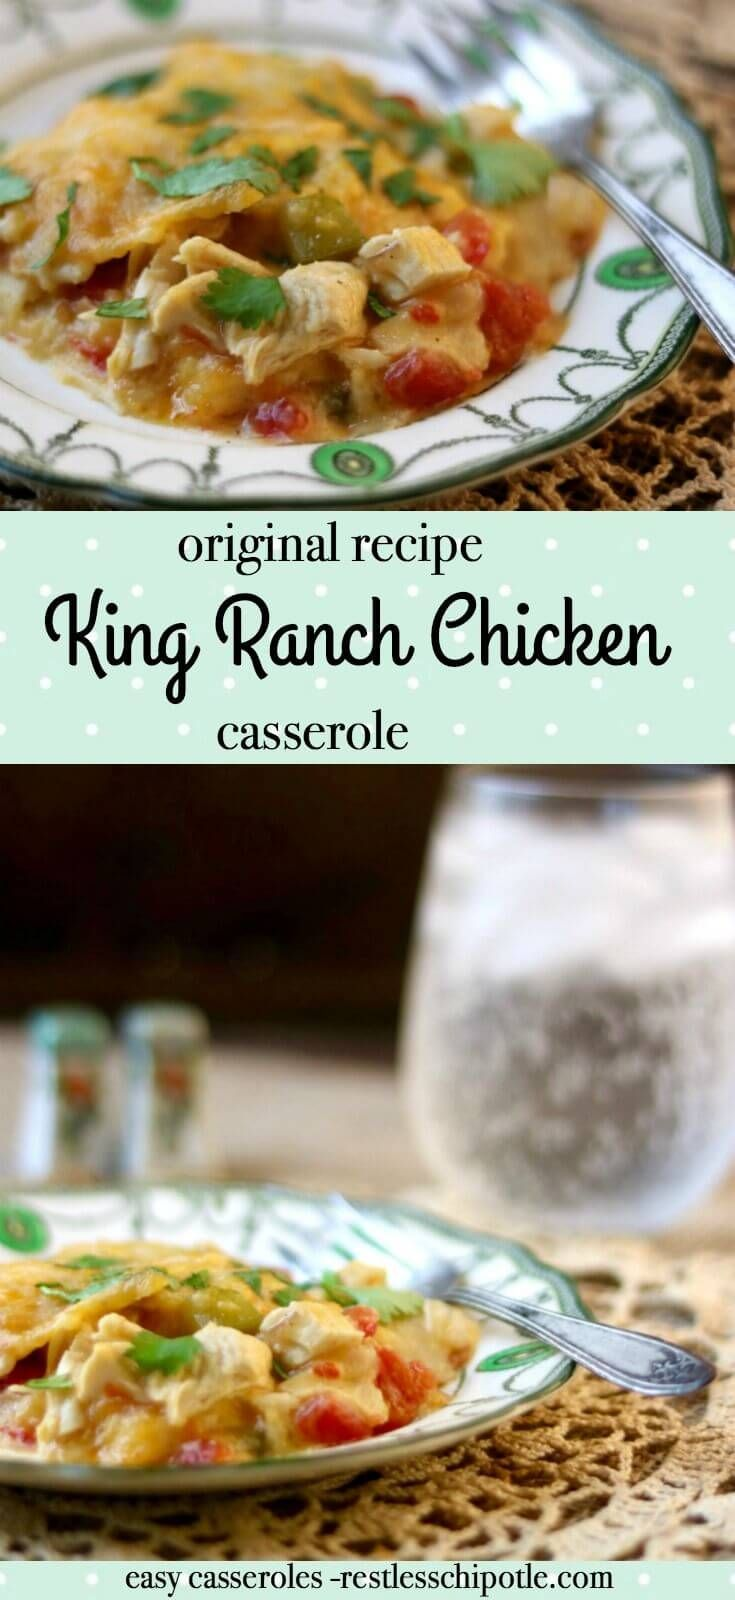 Original King Ranch Chicken casserole is quick, easy, and family friendly! It's perfect for busy weeknights - freezes well, too! From RestlessChipotle.com via @Marye at Restless Chipotle